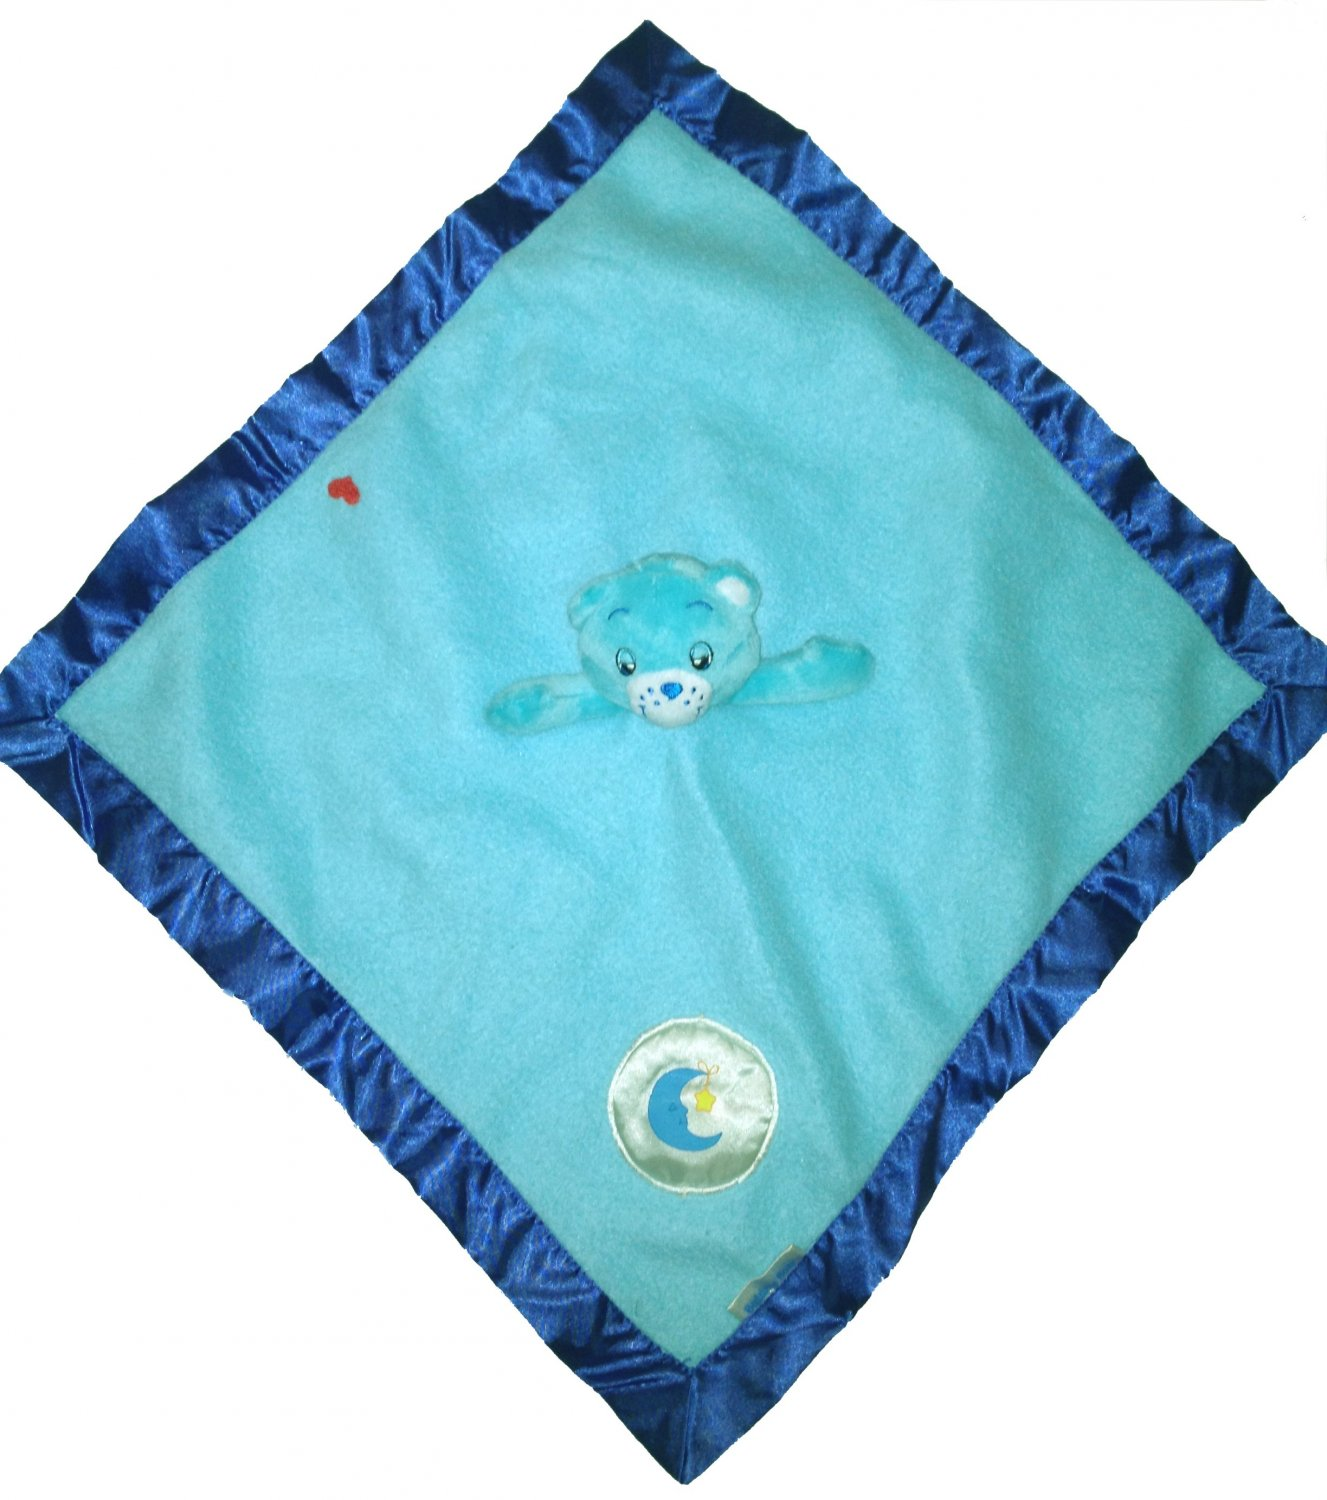 Care Bears Blue Blanky Security Blanket Bedtime Musical Fleece Lovie Snuggle Toy Lovey 2002